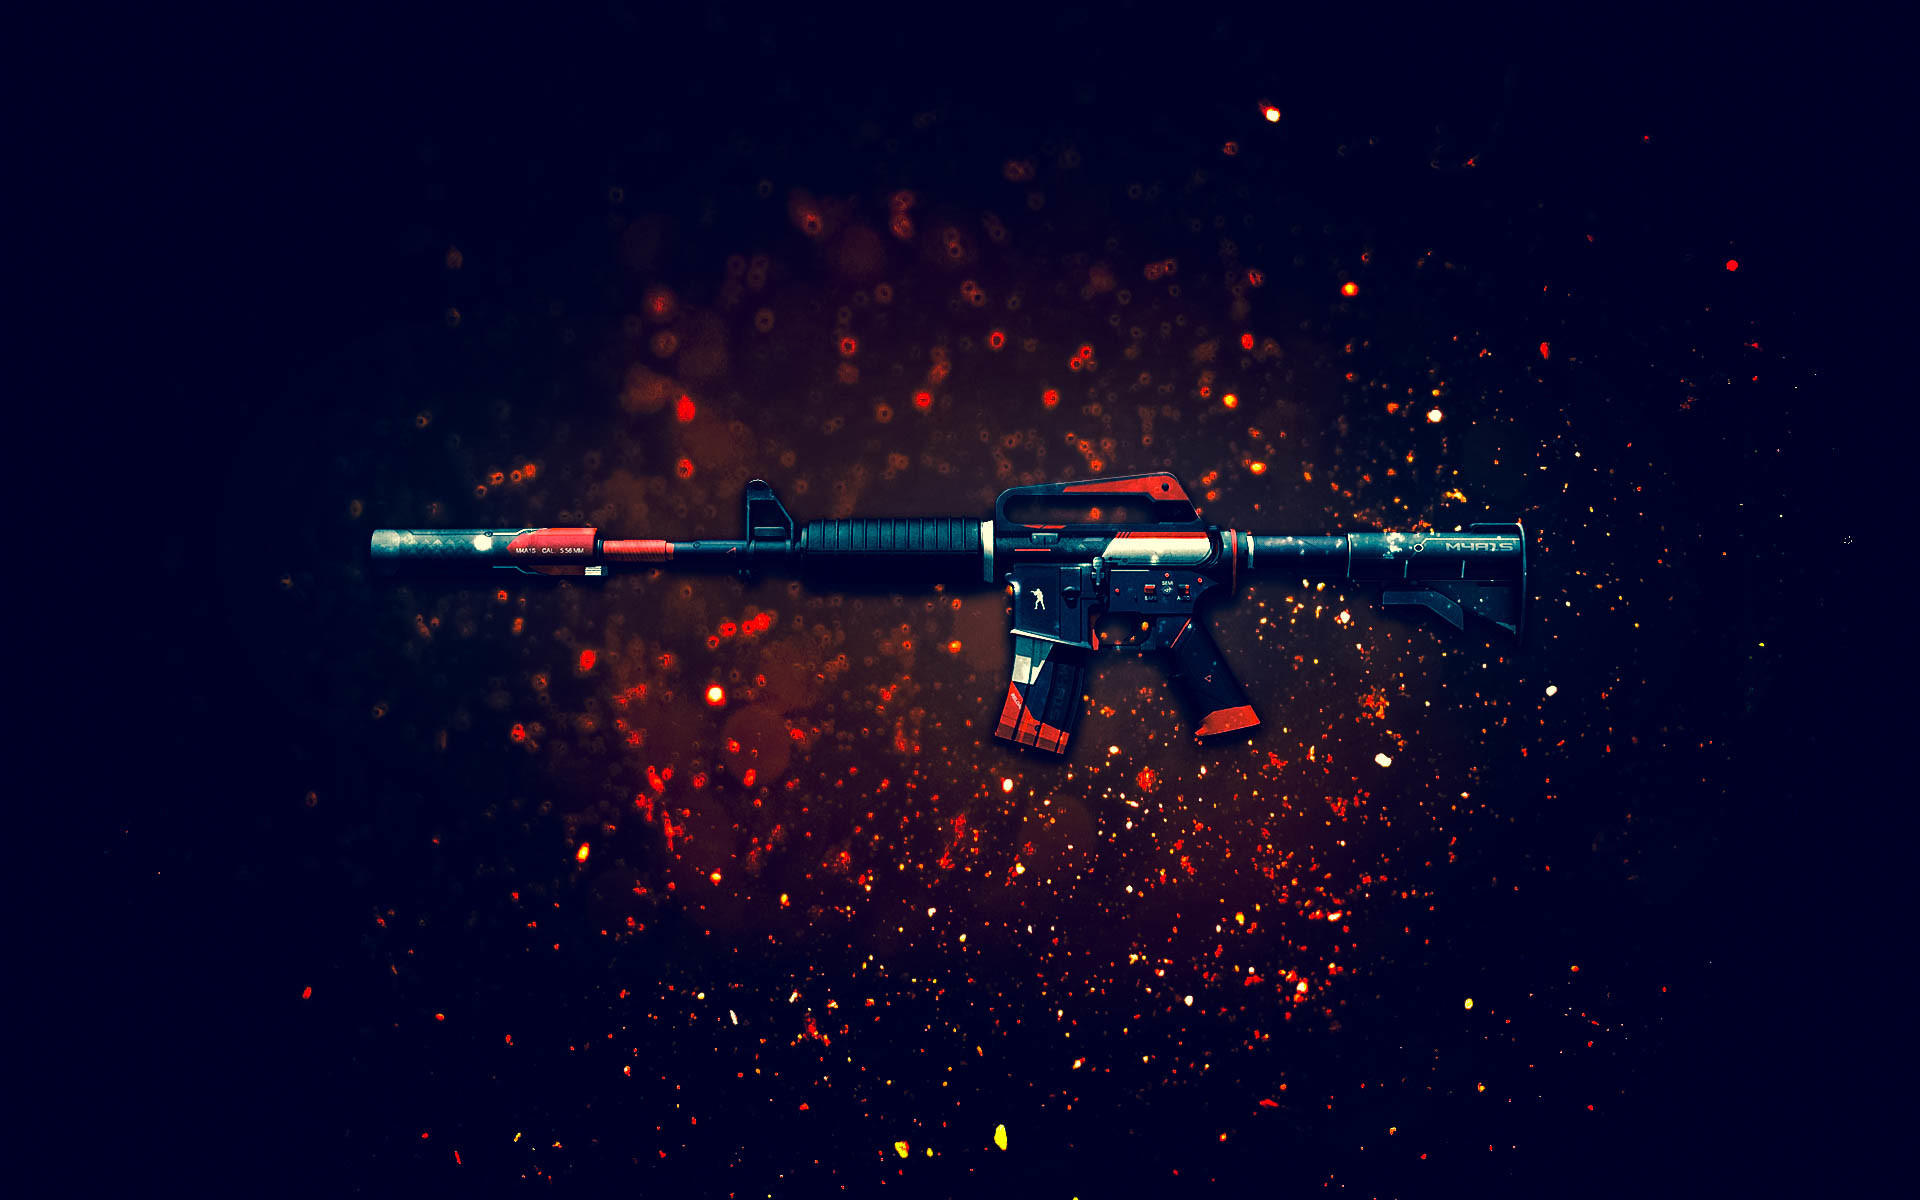 CS:GO Weapon Skin Wallpapers on Behance   My CSGO collection   Pinterest    Weapons